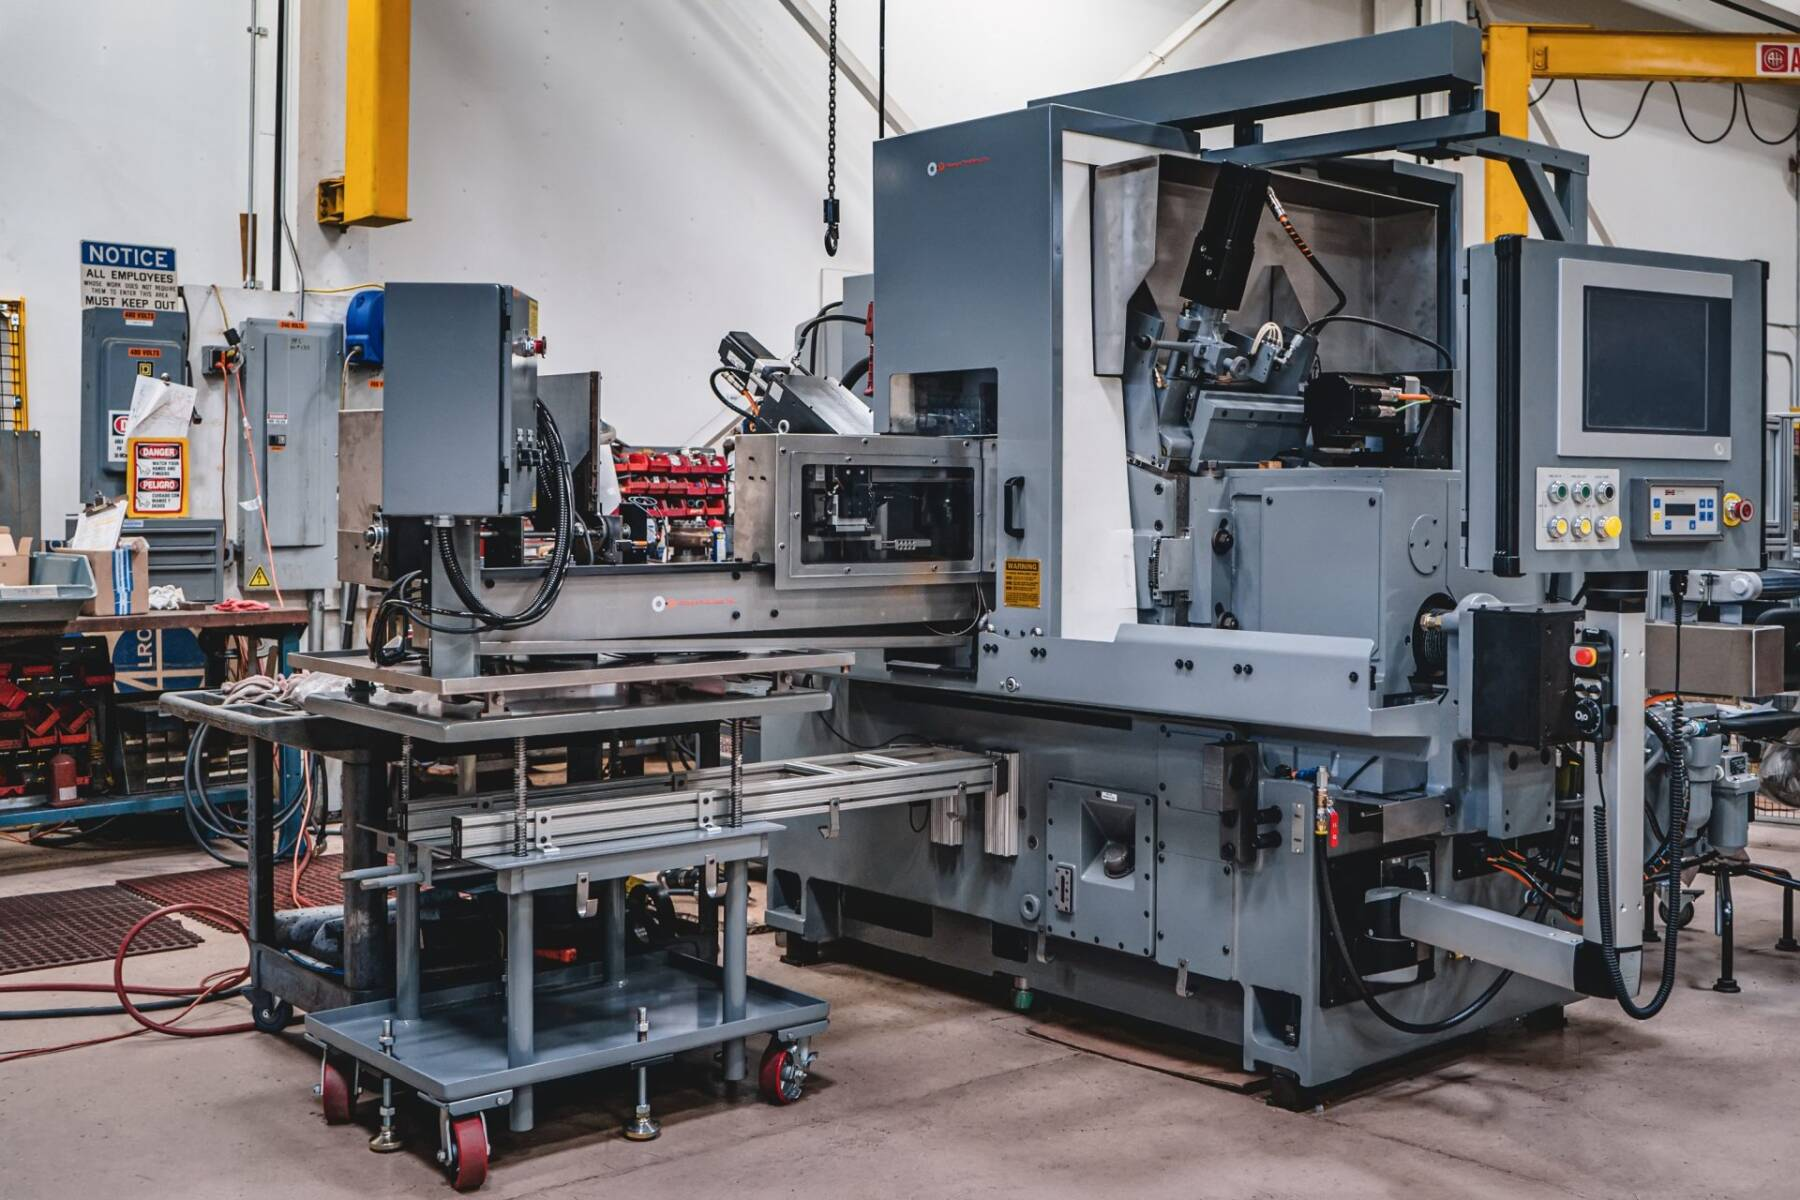 Cincinnati 220-8 CNC Centerless Grinder